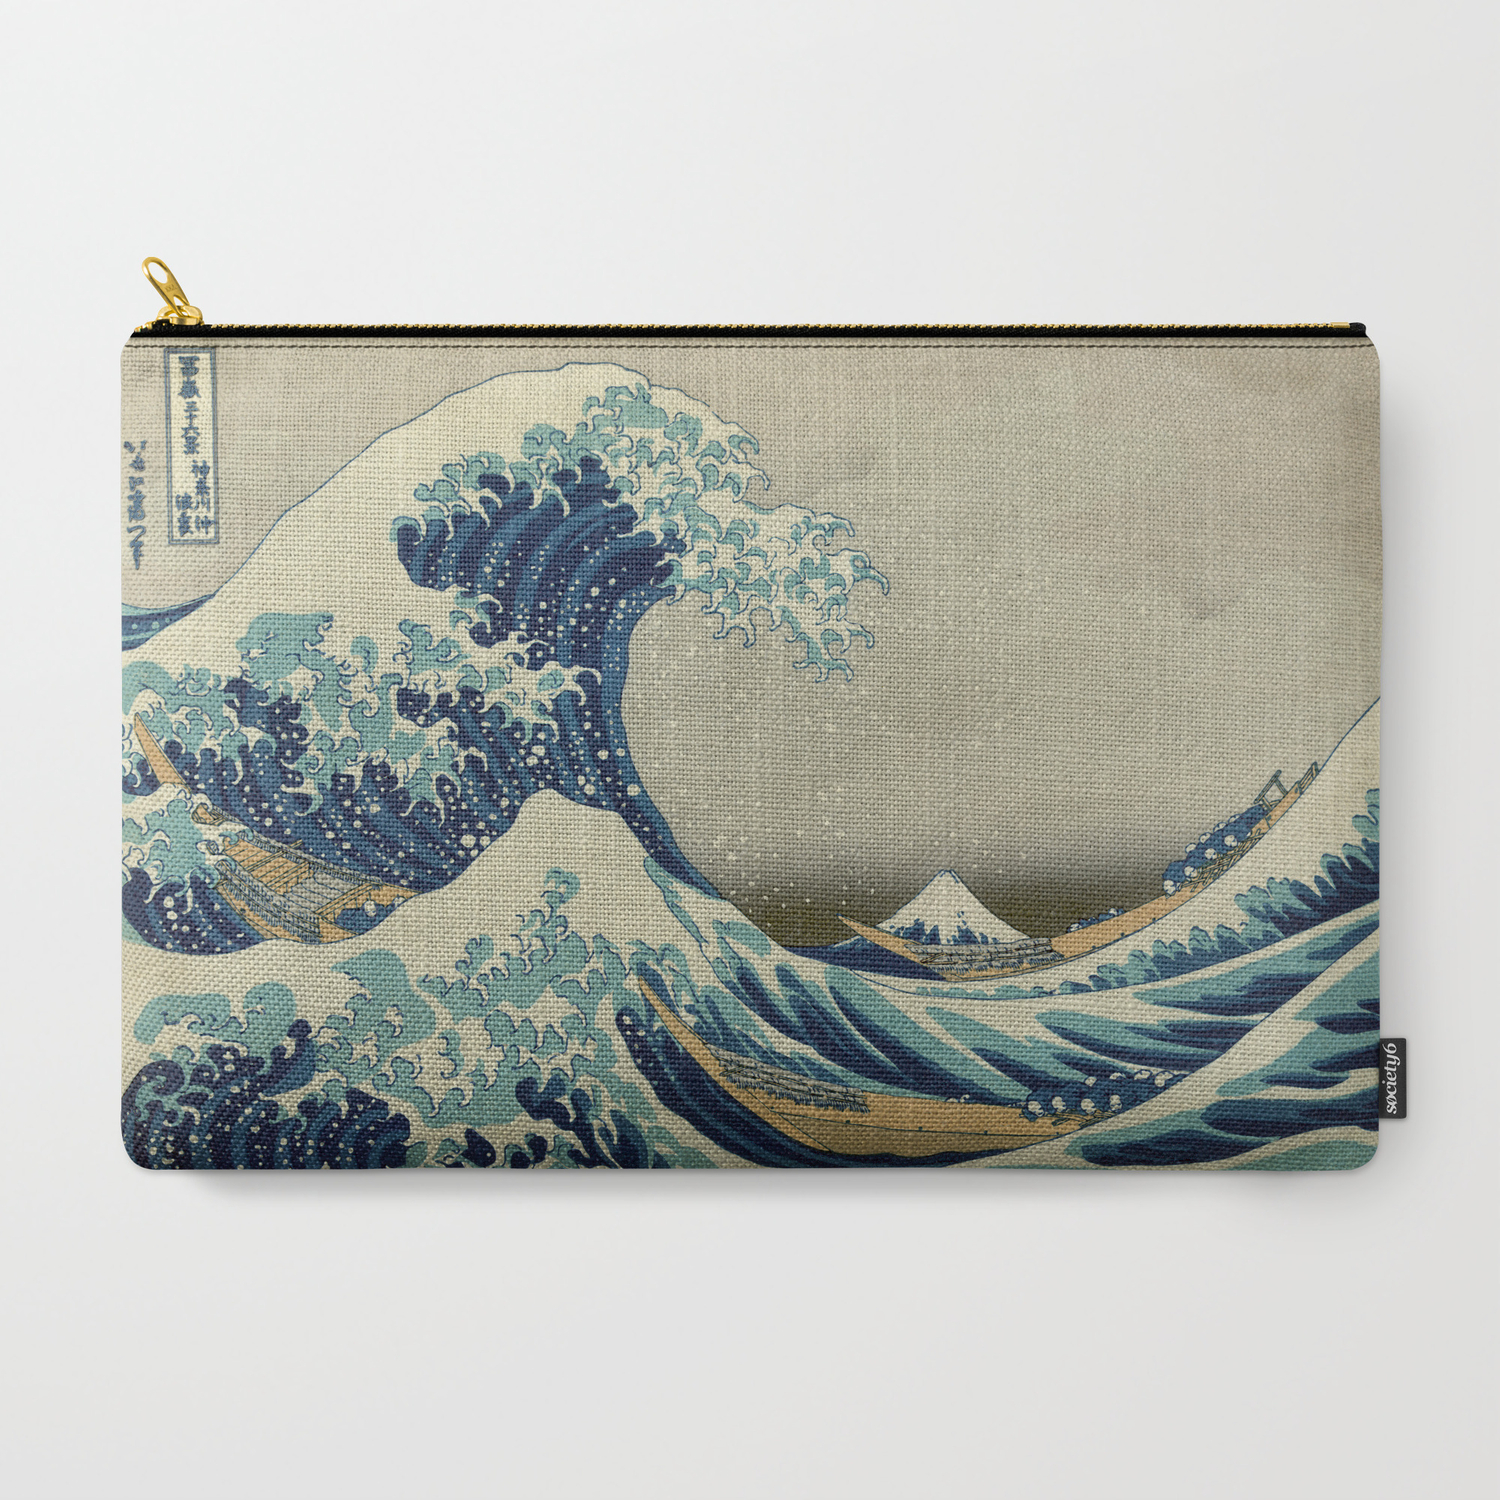 e5a5c4de9ecc9 The Classic Japanese Great Wave off Kanagawa Print by Hokusai Carry-All  Pouch